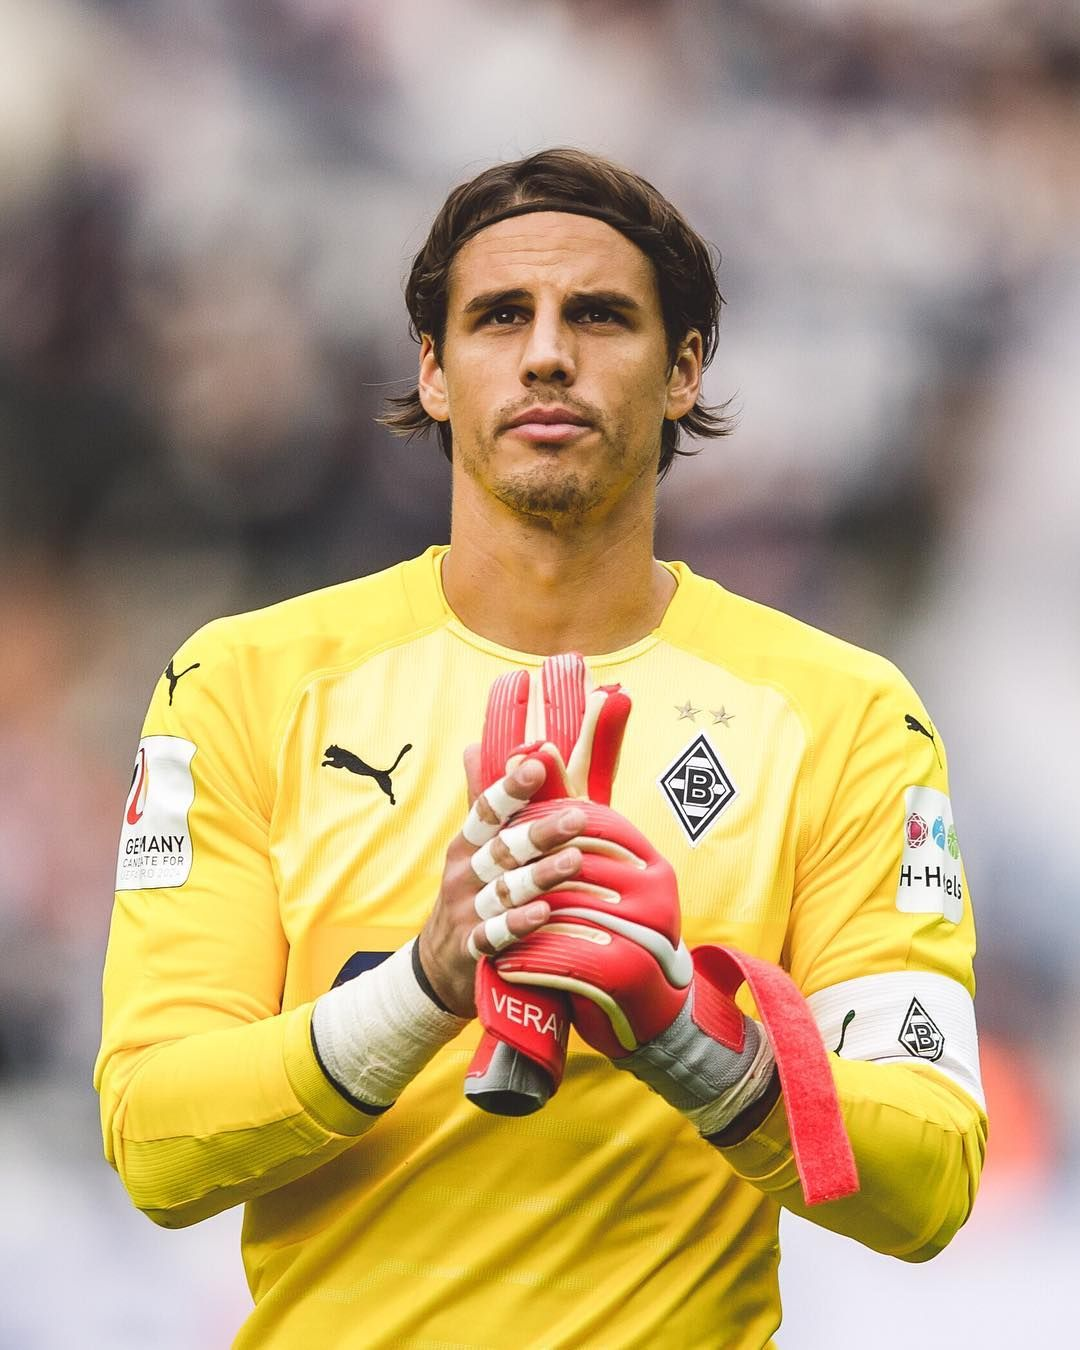 Yann Sommer Instagram Com Disappointing Result But Thank You For The Great Support In Berlin Ys1 Verano Borussia Greatful Supportive Russia